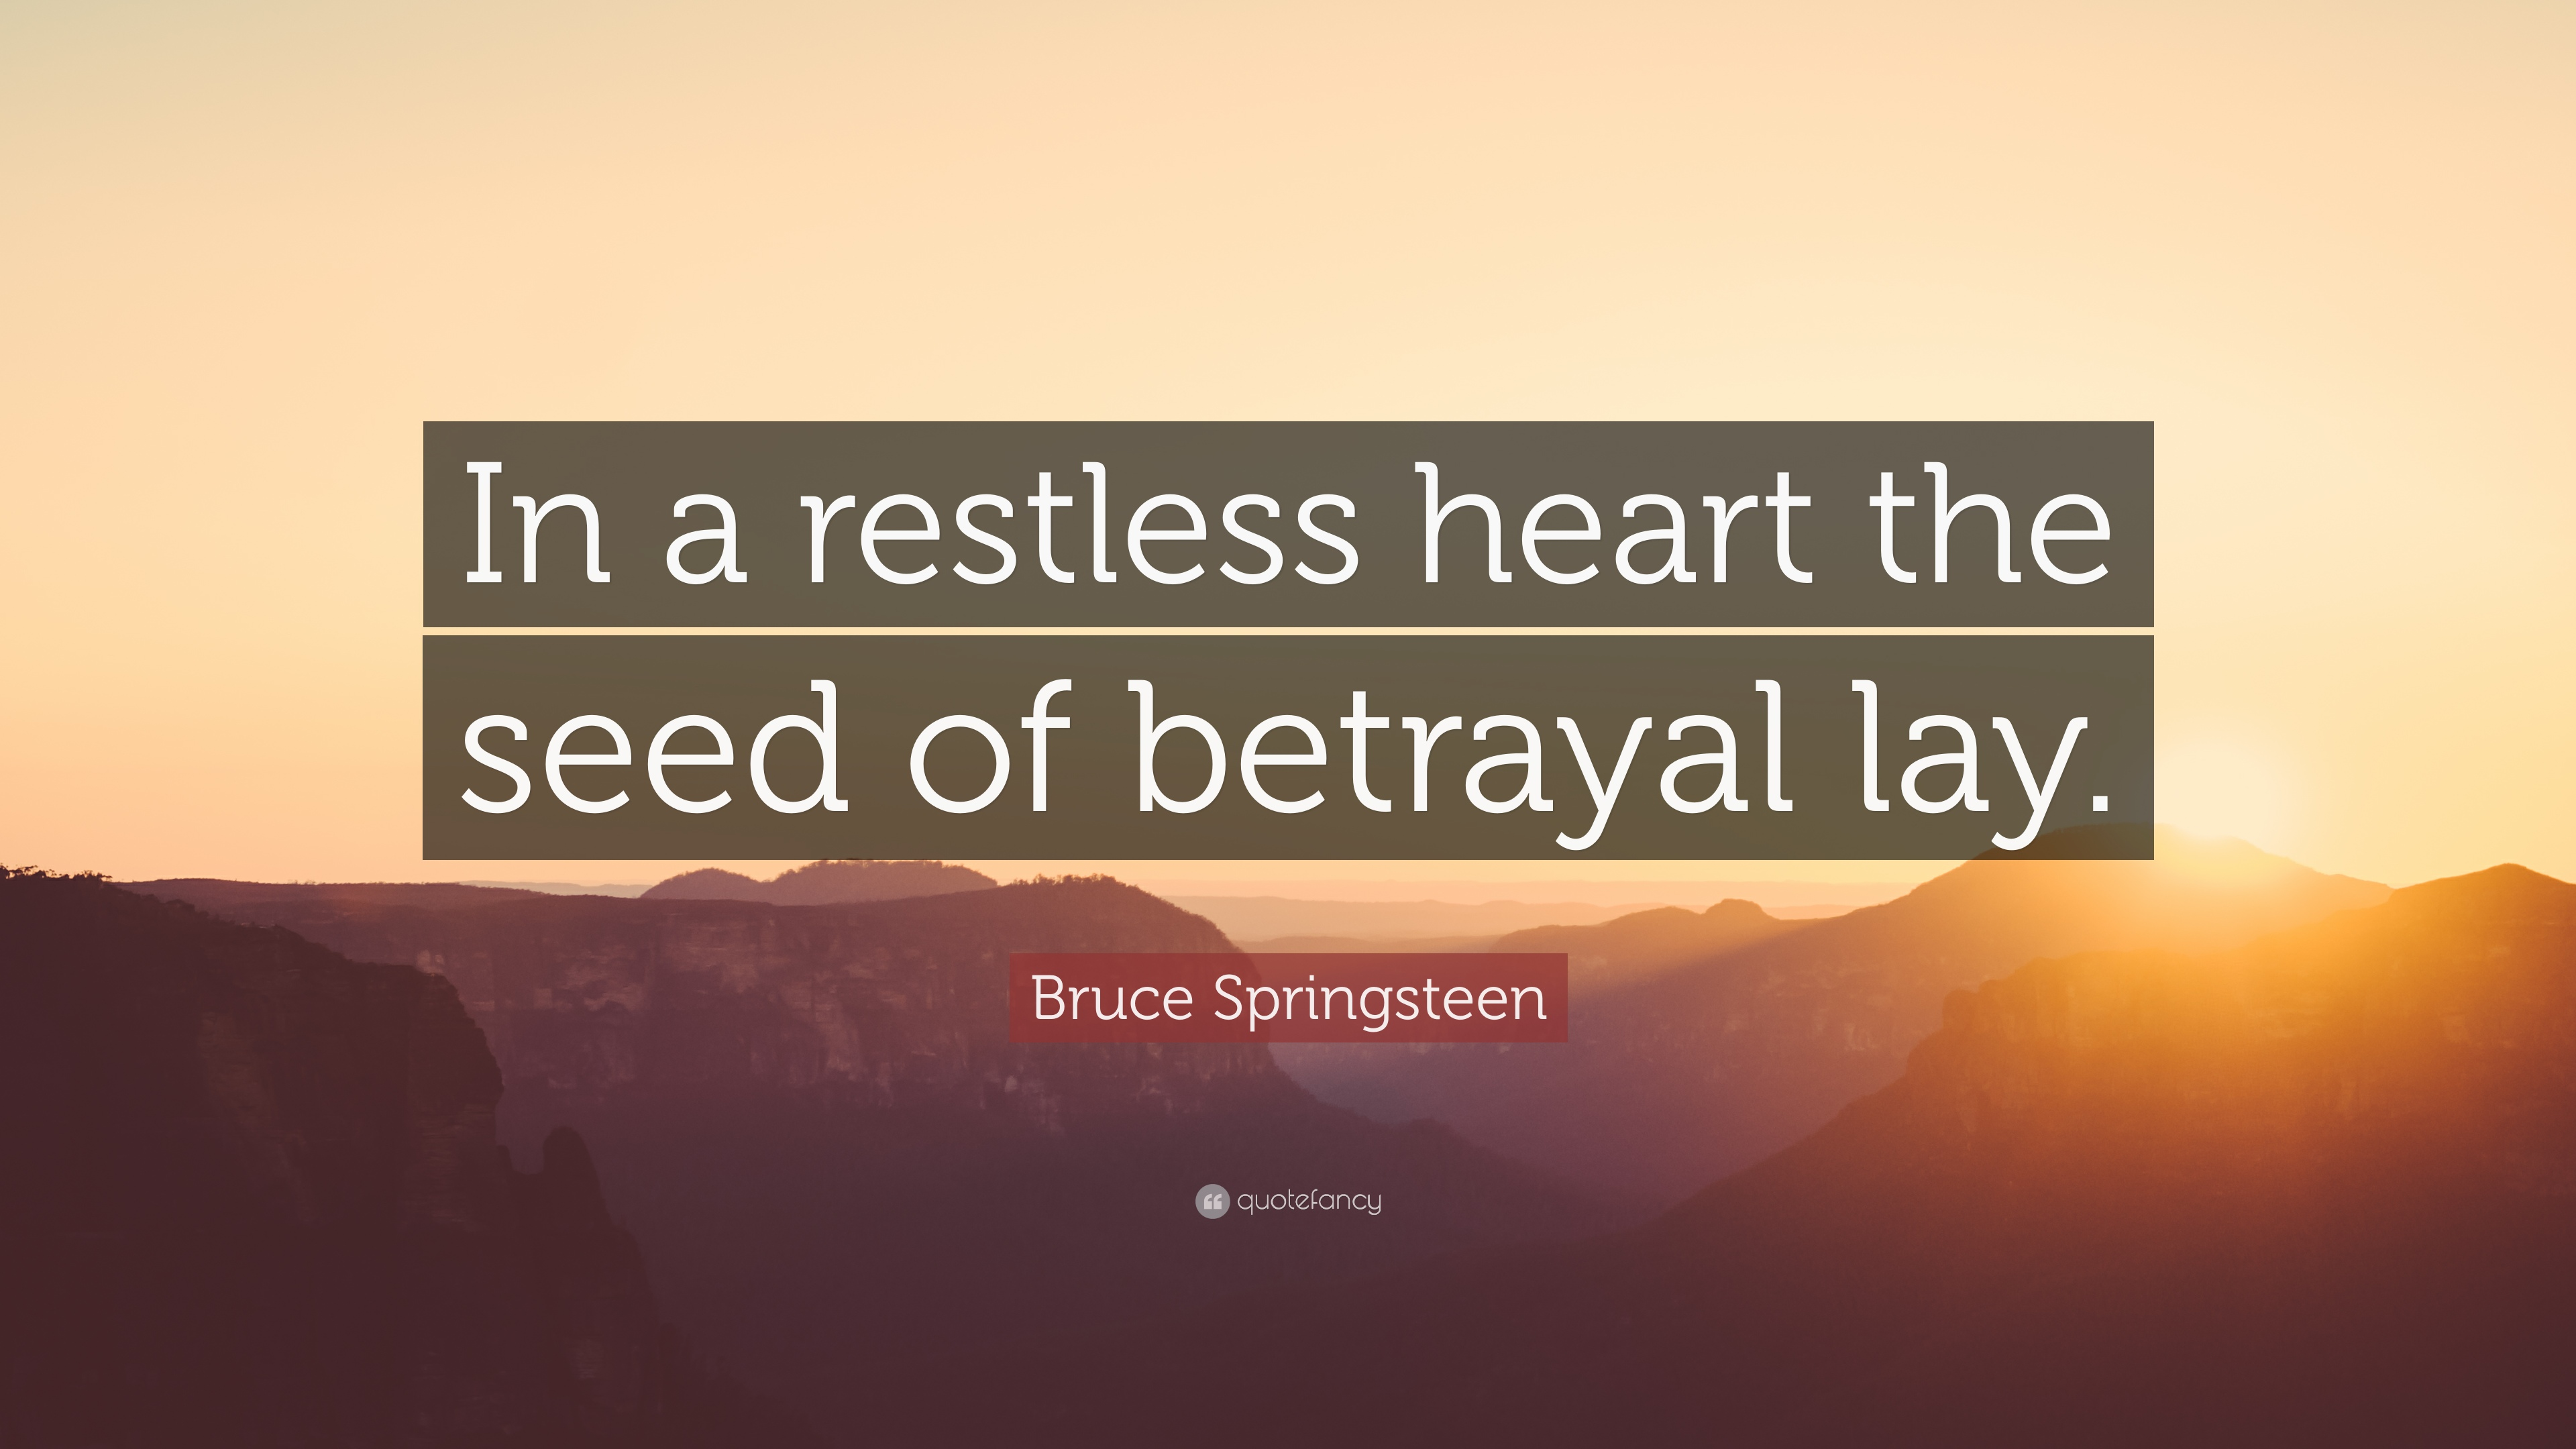 Father S Betrayal Quotes And Sayings: Betrayal Quotes (40 Wallpapers)